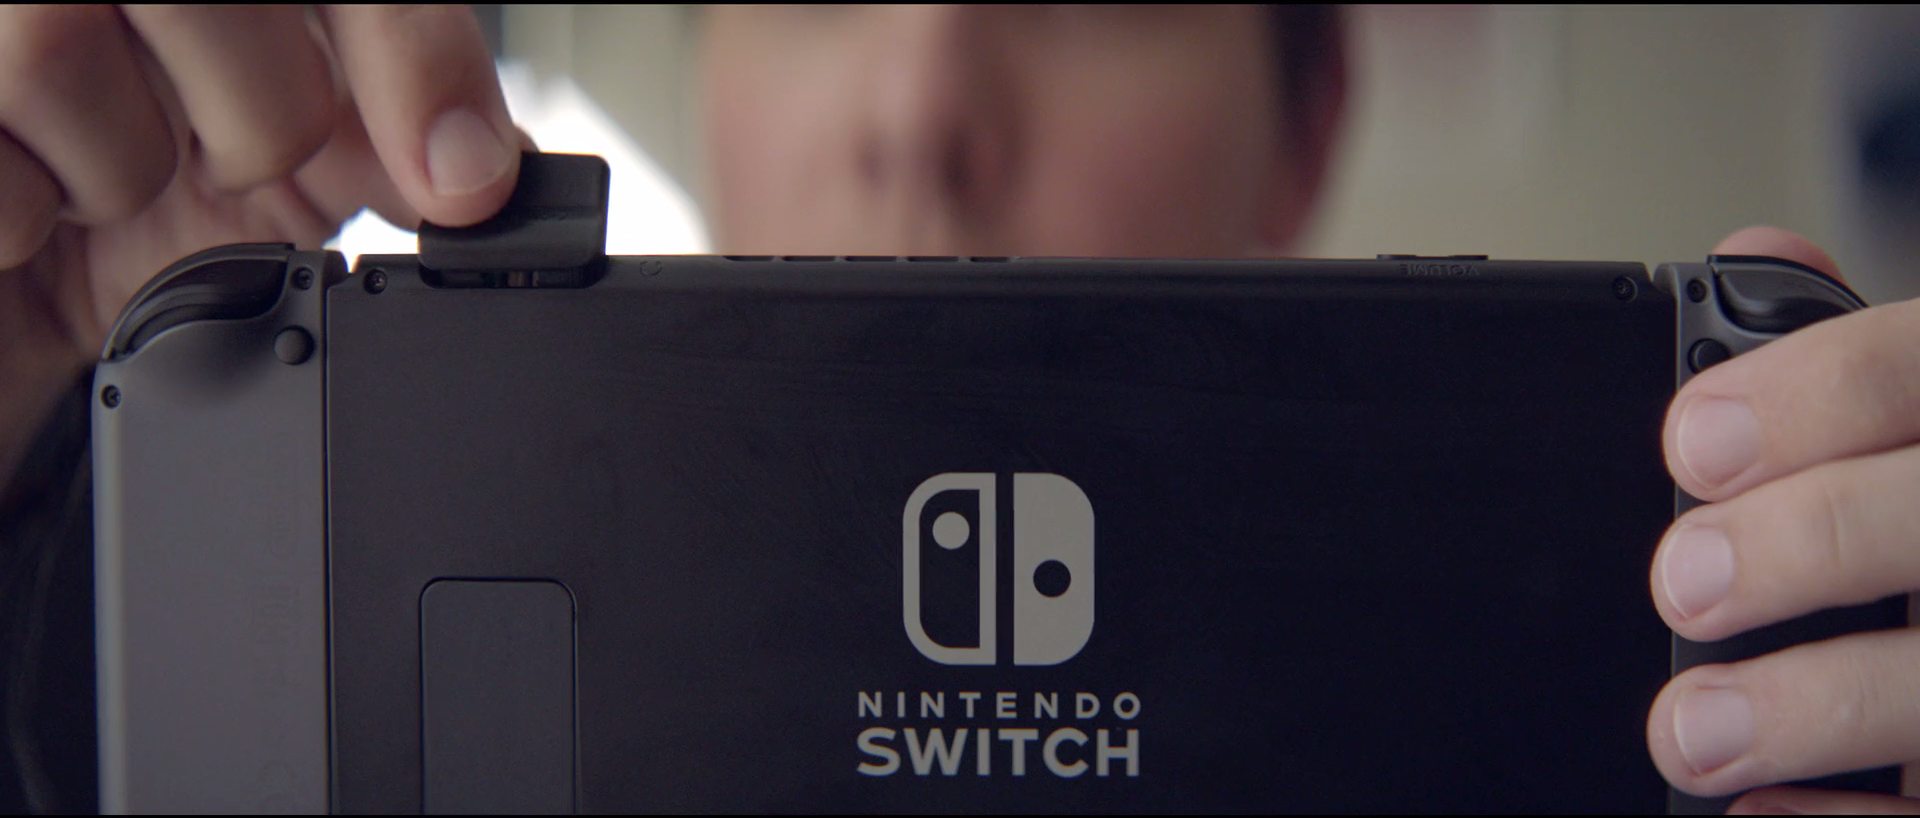 NINTENDO SWITCH TRAILER